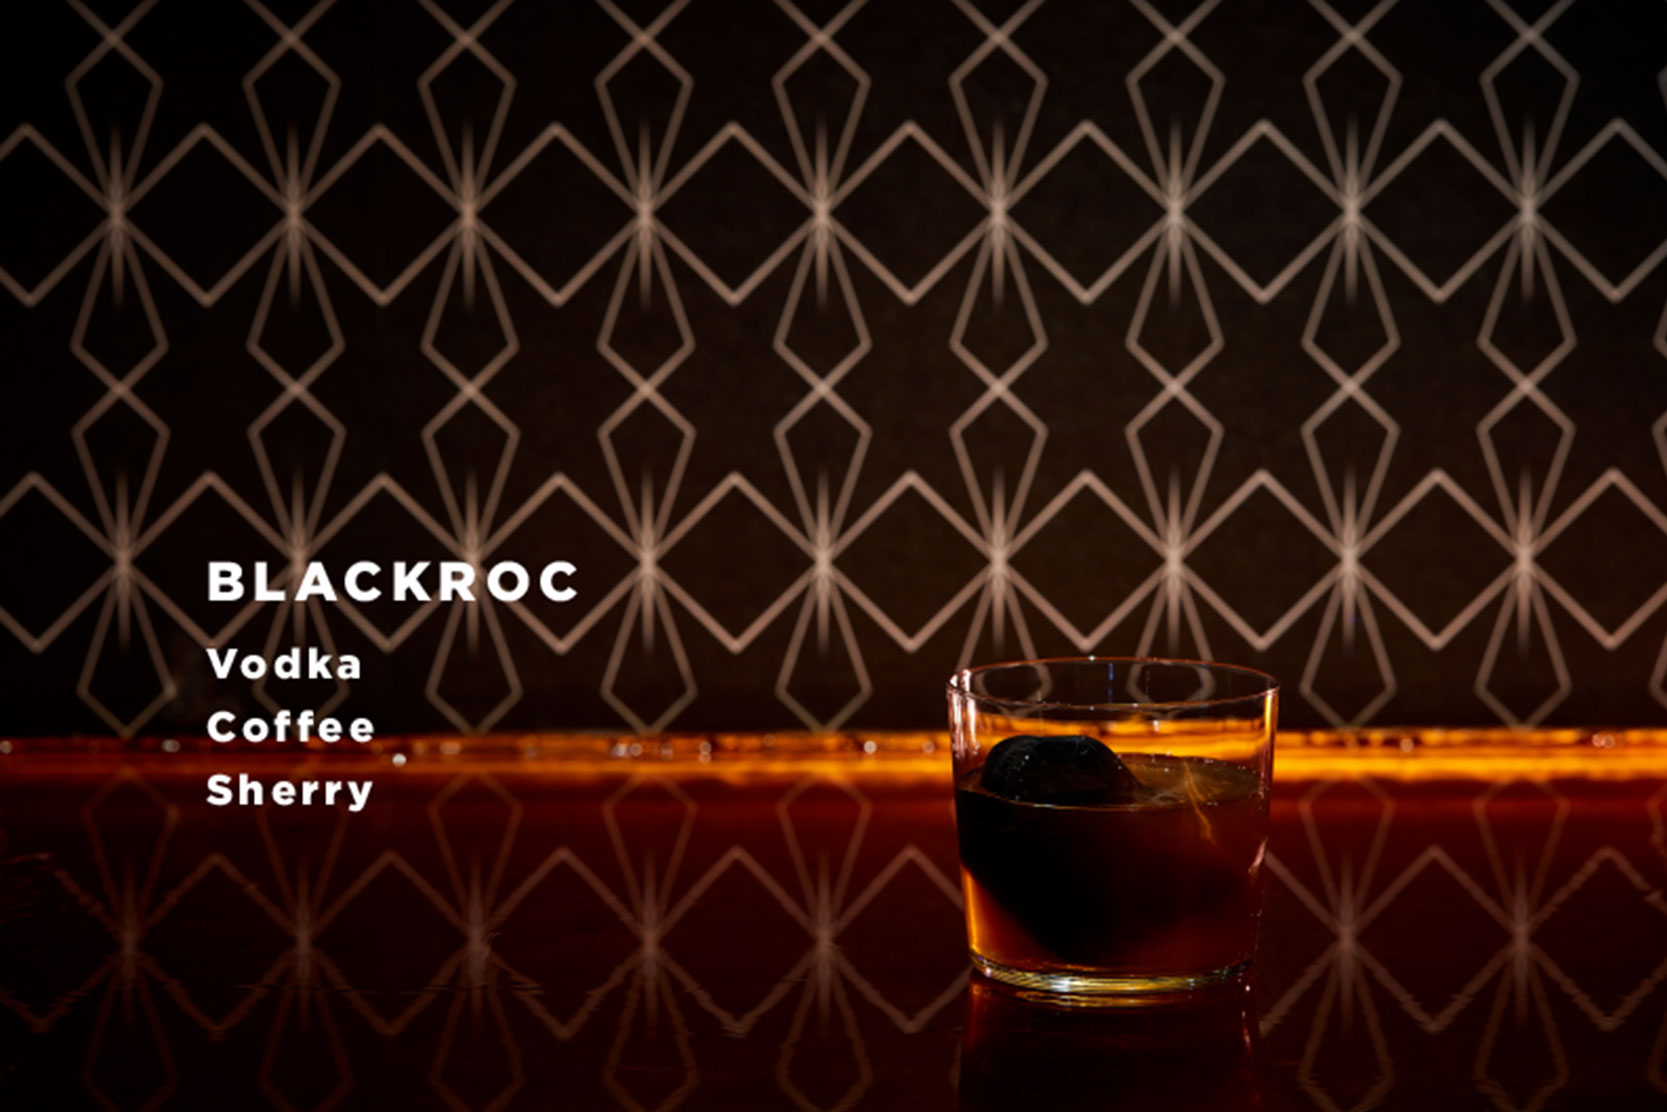 Blackroc-the-grid-cocktail-bar-koeln